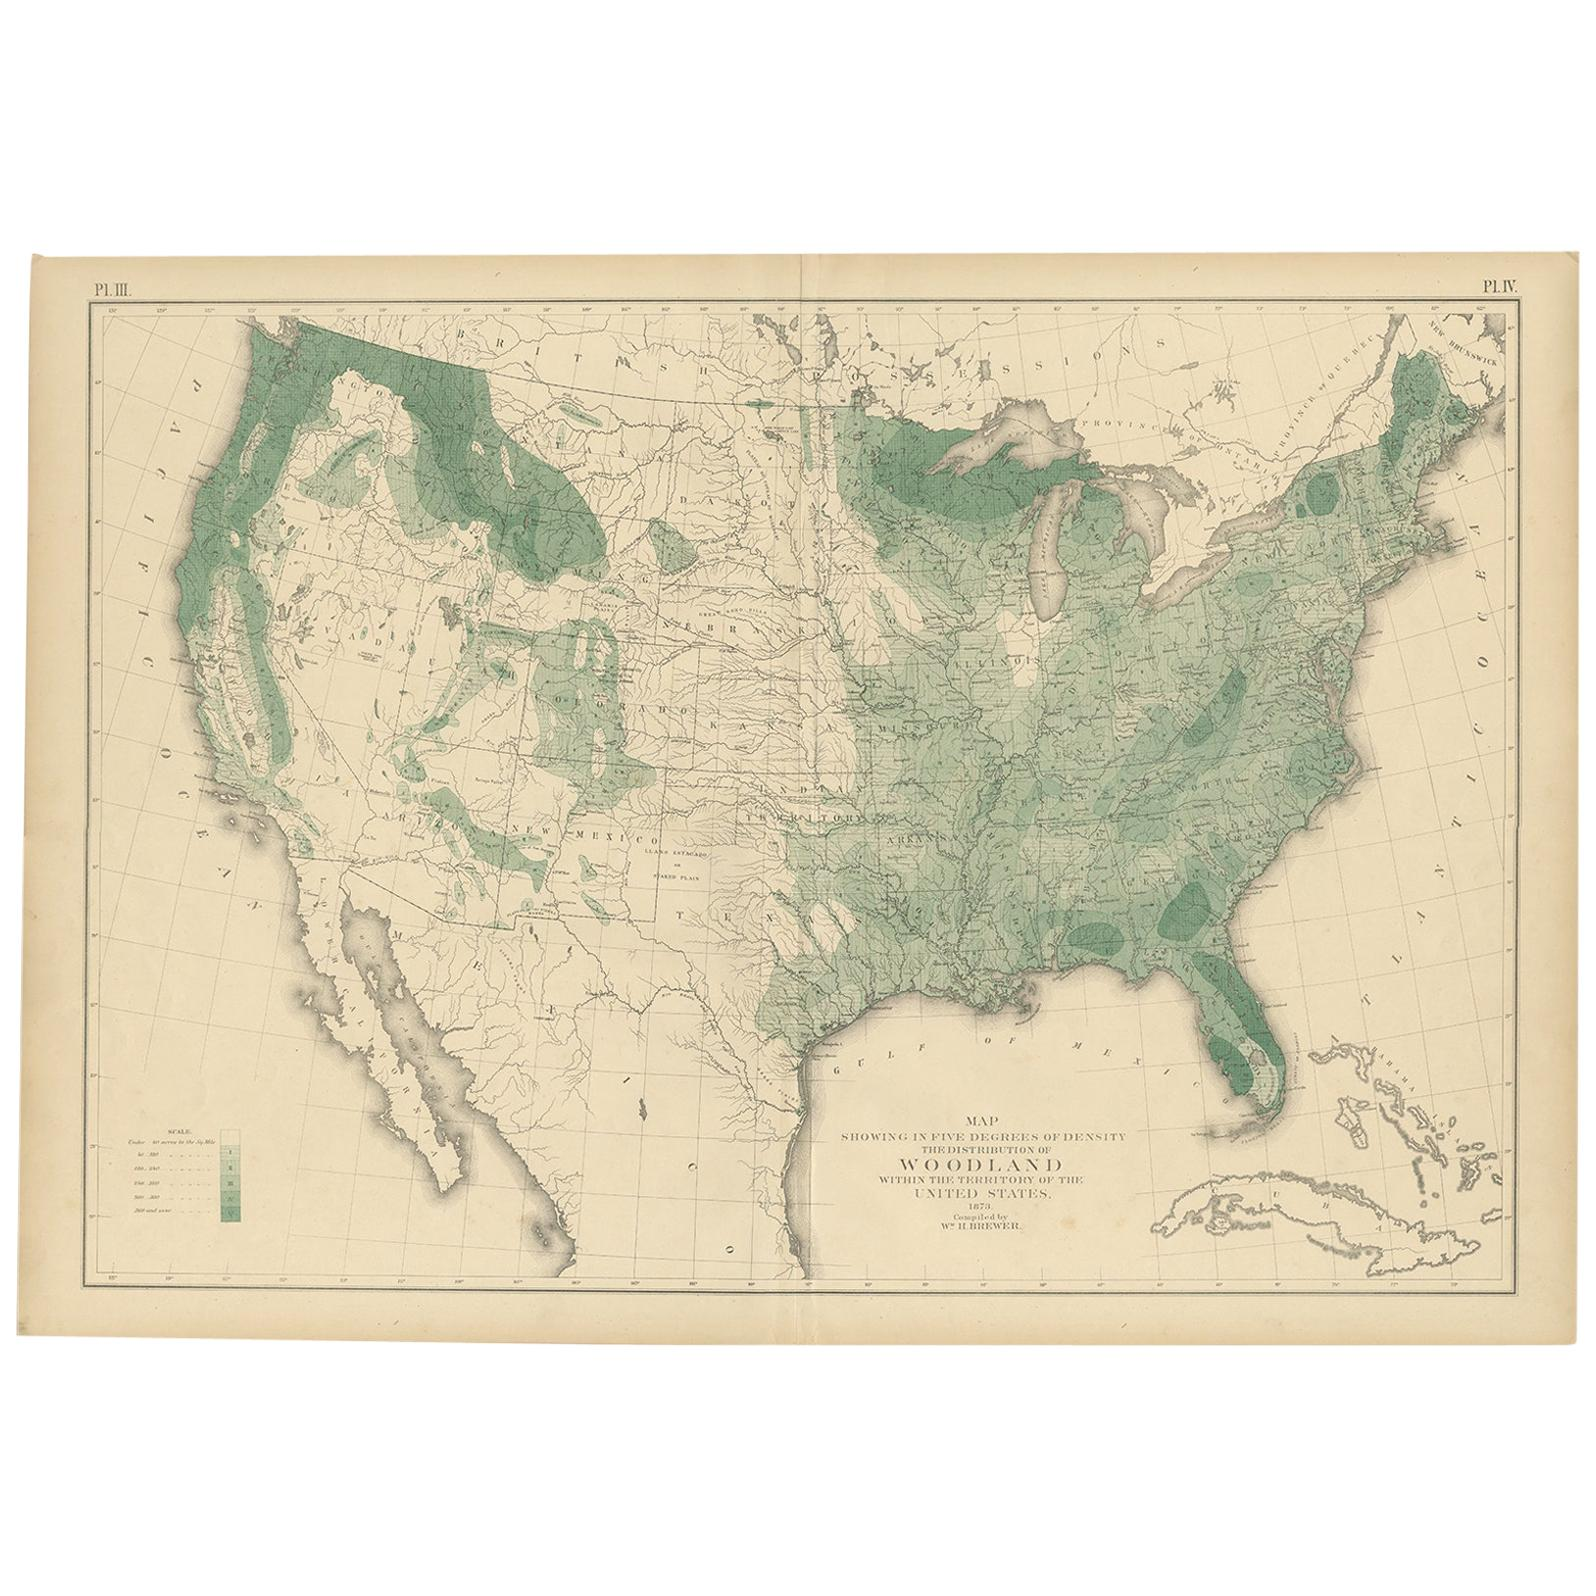 Pl. 3 Antique Map of the Woodland of the United States by Walker, 1874